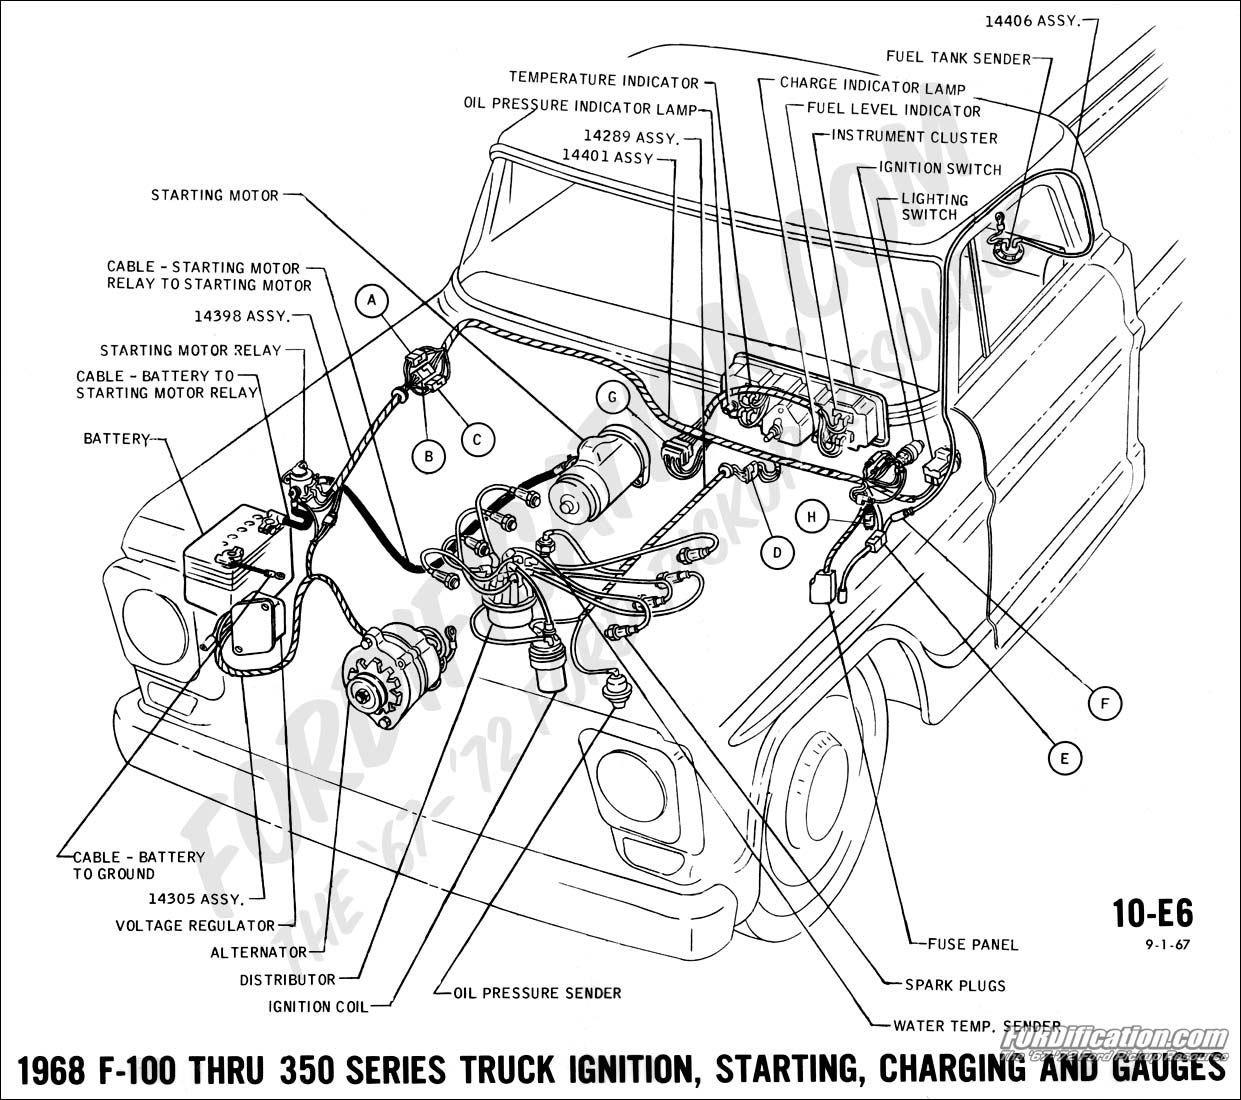 BFB62 1981 Gm Fuse Box Diagram | Digital Resources on 1974 corvette fuse panel diagram, 1981 corvette wiring diagram, 81 corvette horn relay, 1983 chevy fuse diagram, 81 corvette dash, 81 corvette fuse block, 82 corvette fuse panel diagram, 1981 corvette fuse diagram, 81 corvette blower motor, 81 corvette headlight, 1980 corvette fuse block diagram, 81 corvette tail lights, 1985 corvette electrical diagram, 1978 corvette fuse diagram, 1979 chevrolet corvette fuse diagram, 81 corvette hood,